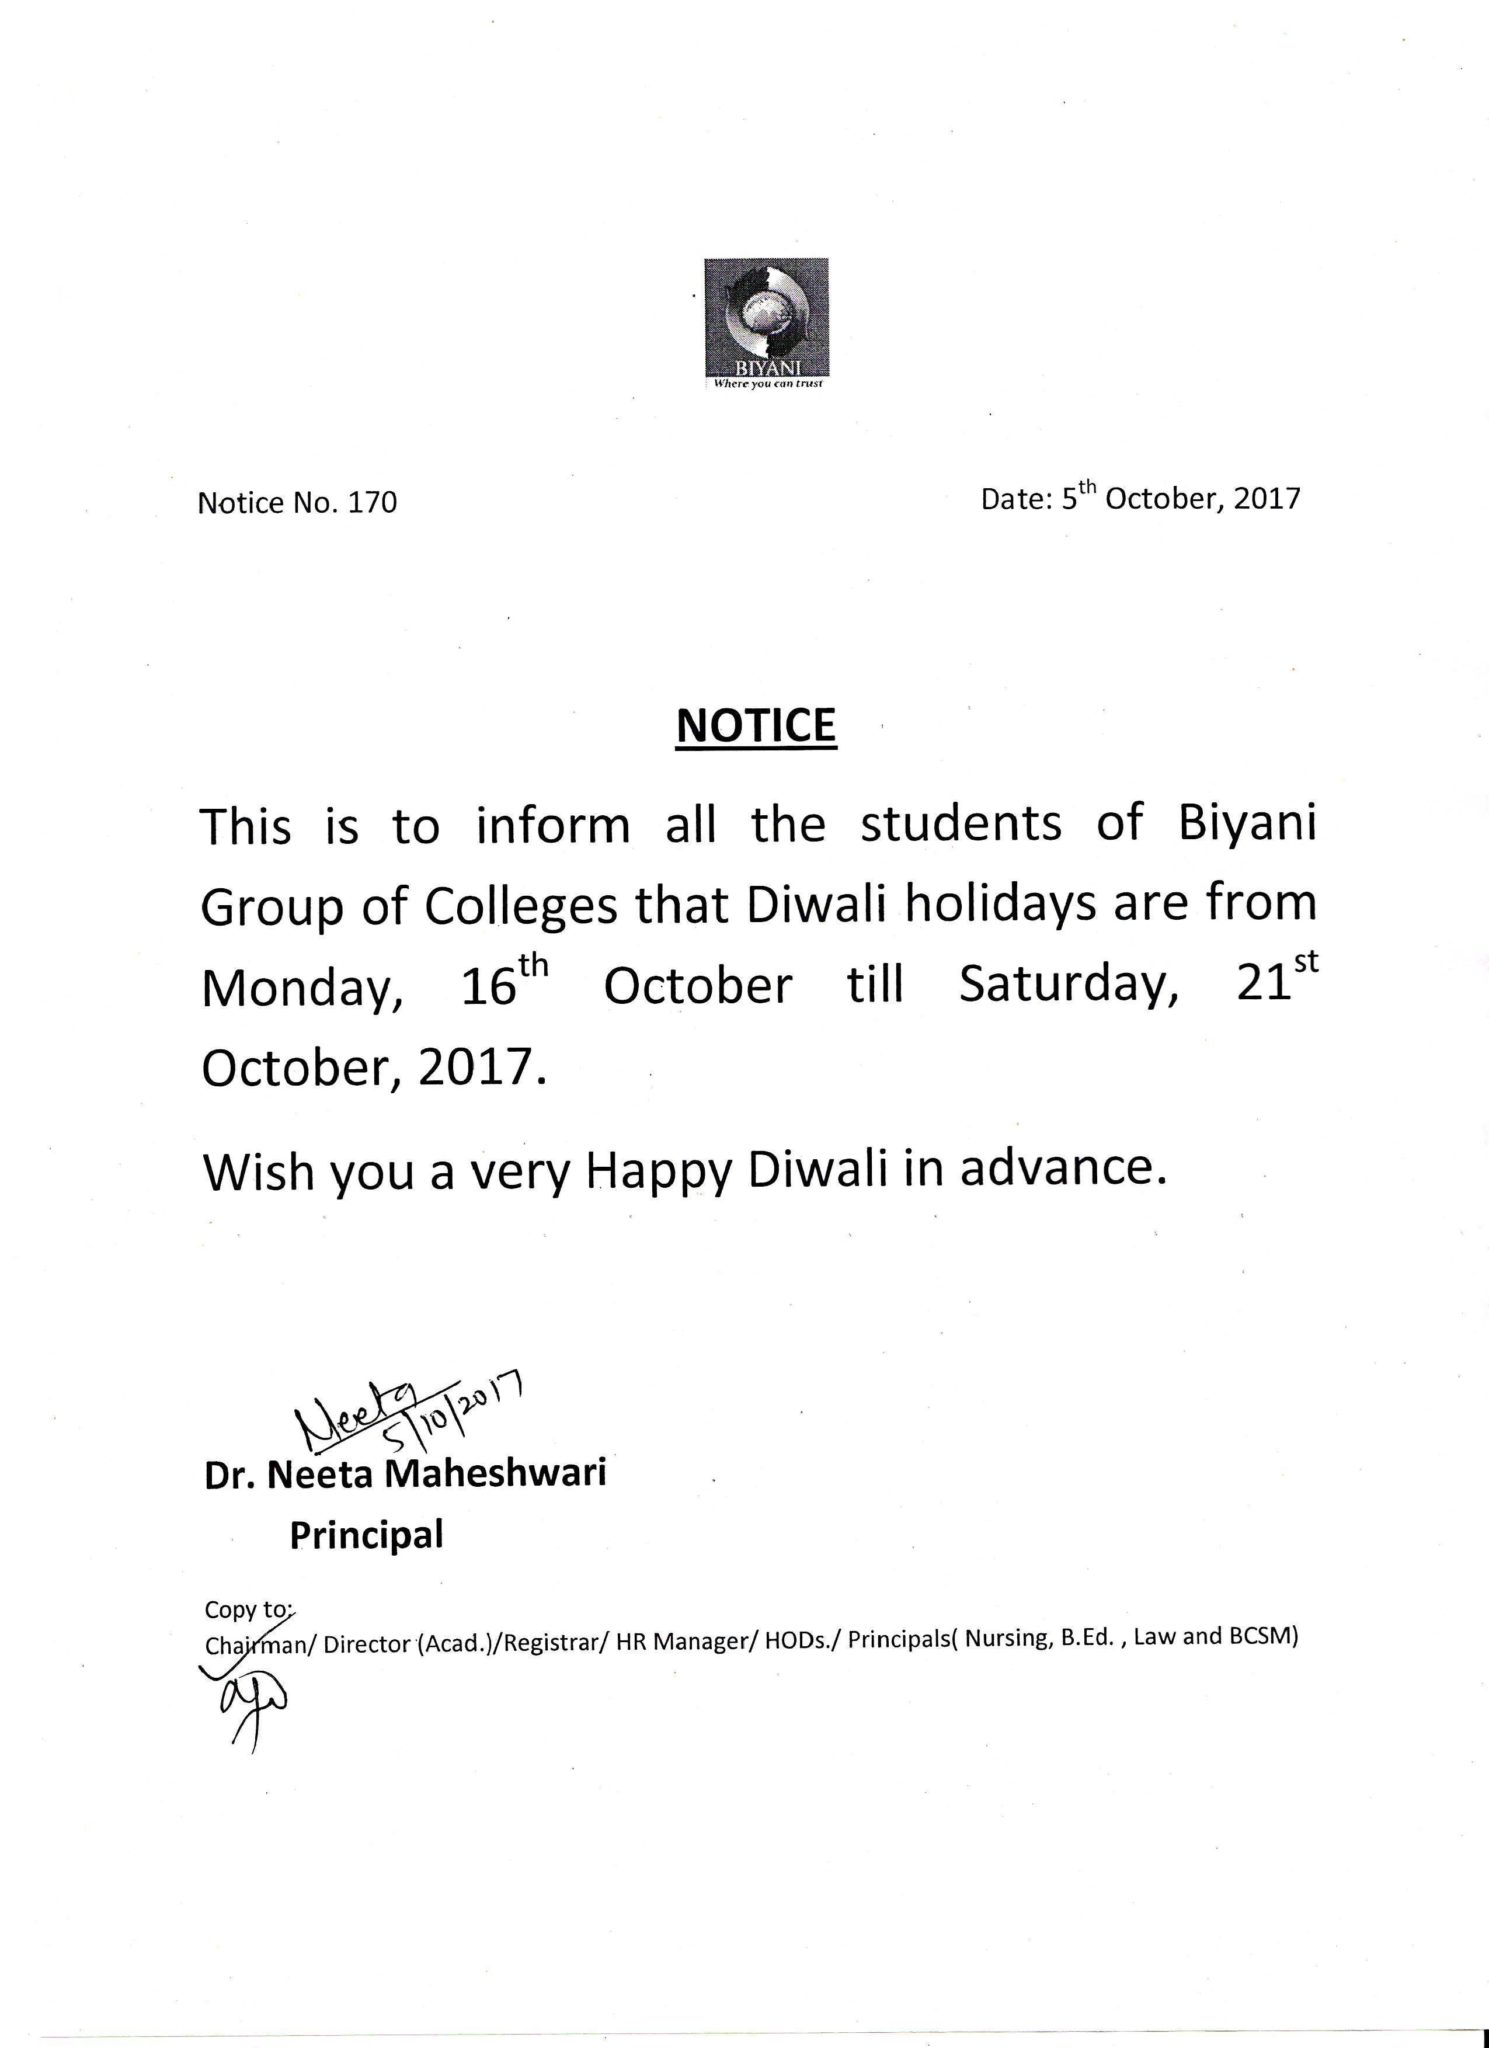 53 principal 05 oct 2017 regarding diwali holidays for students